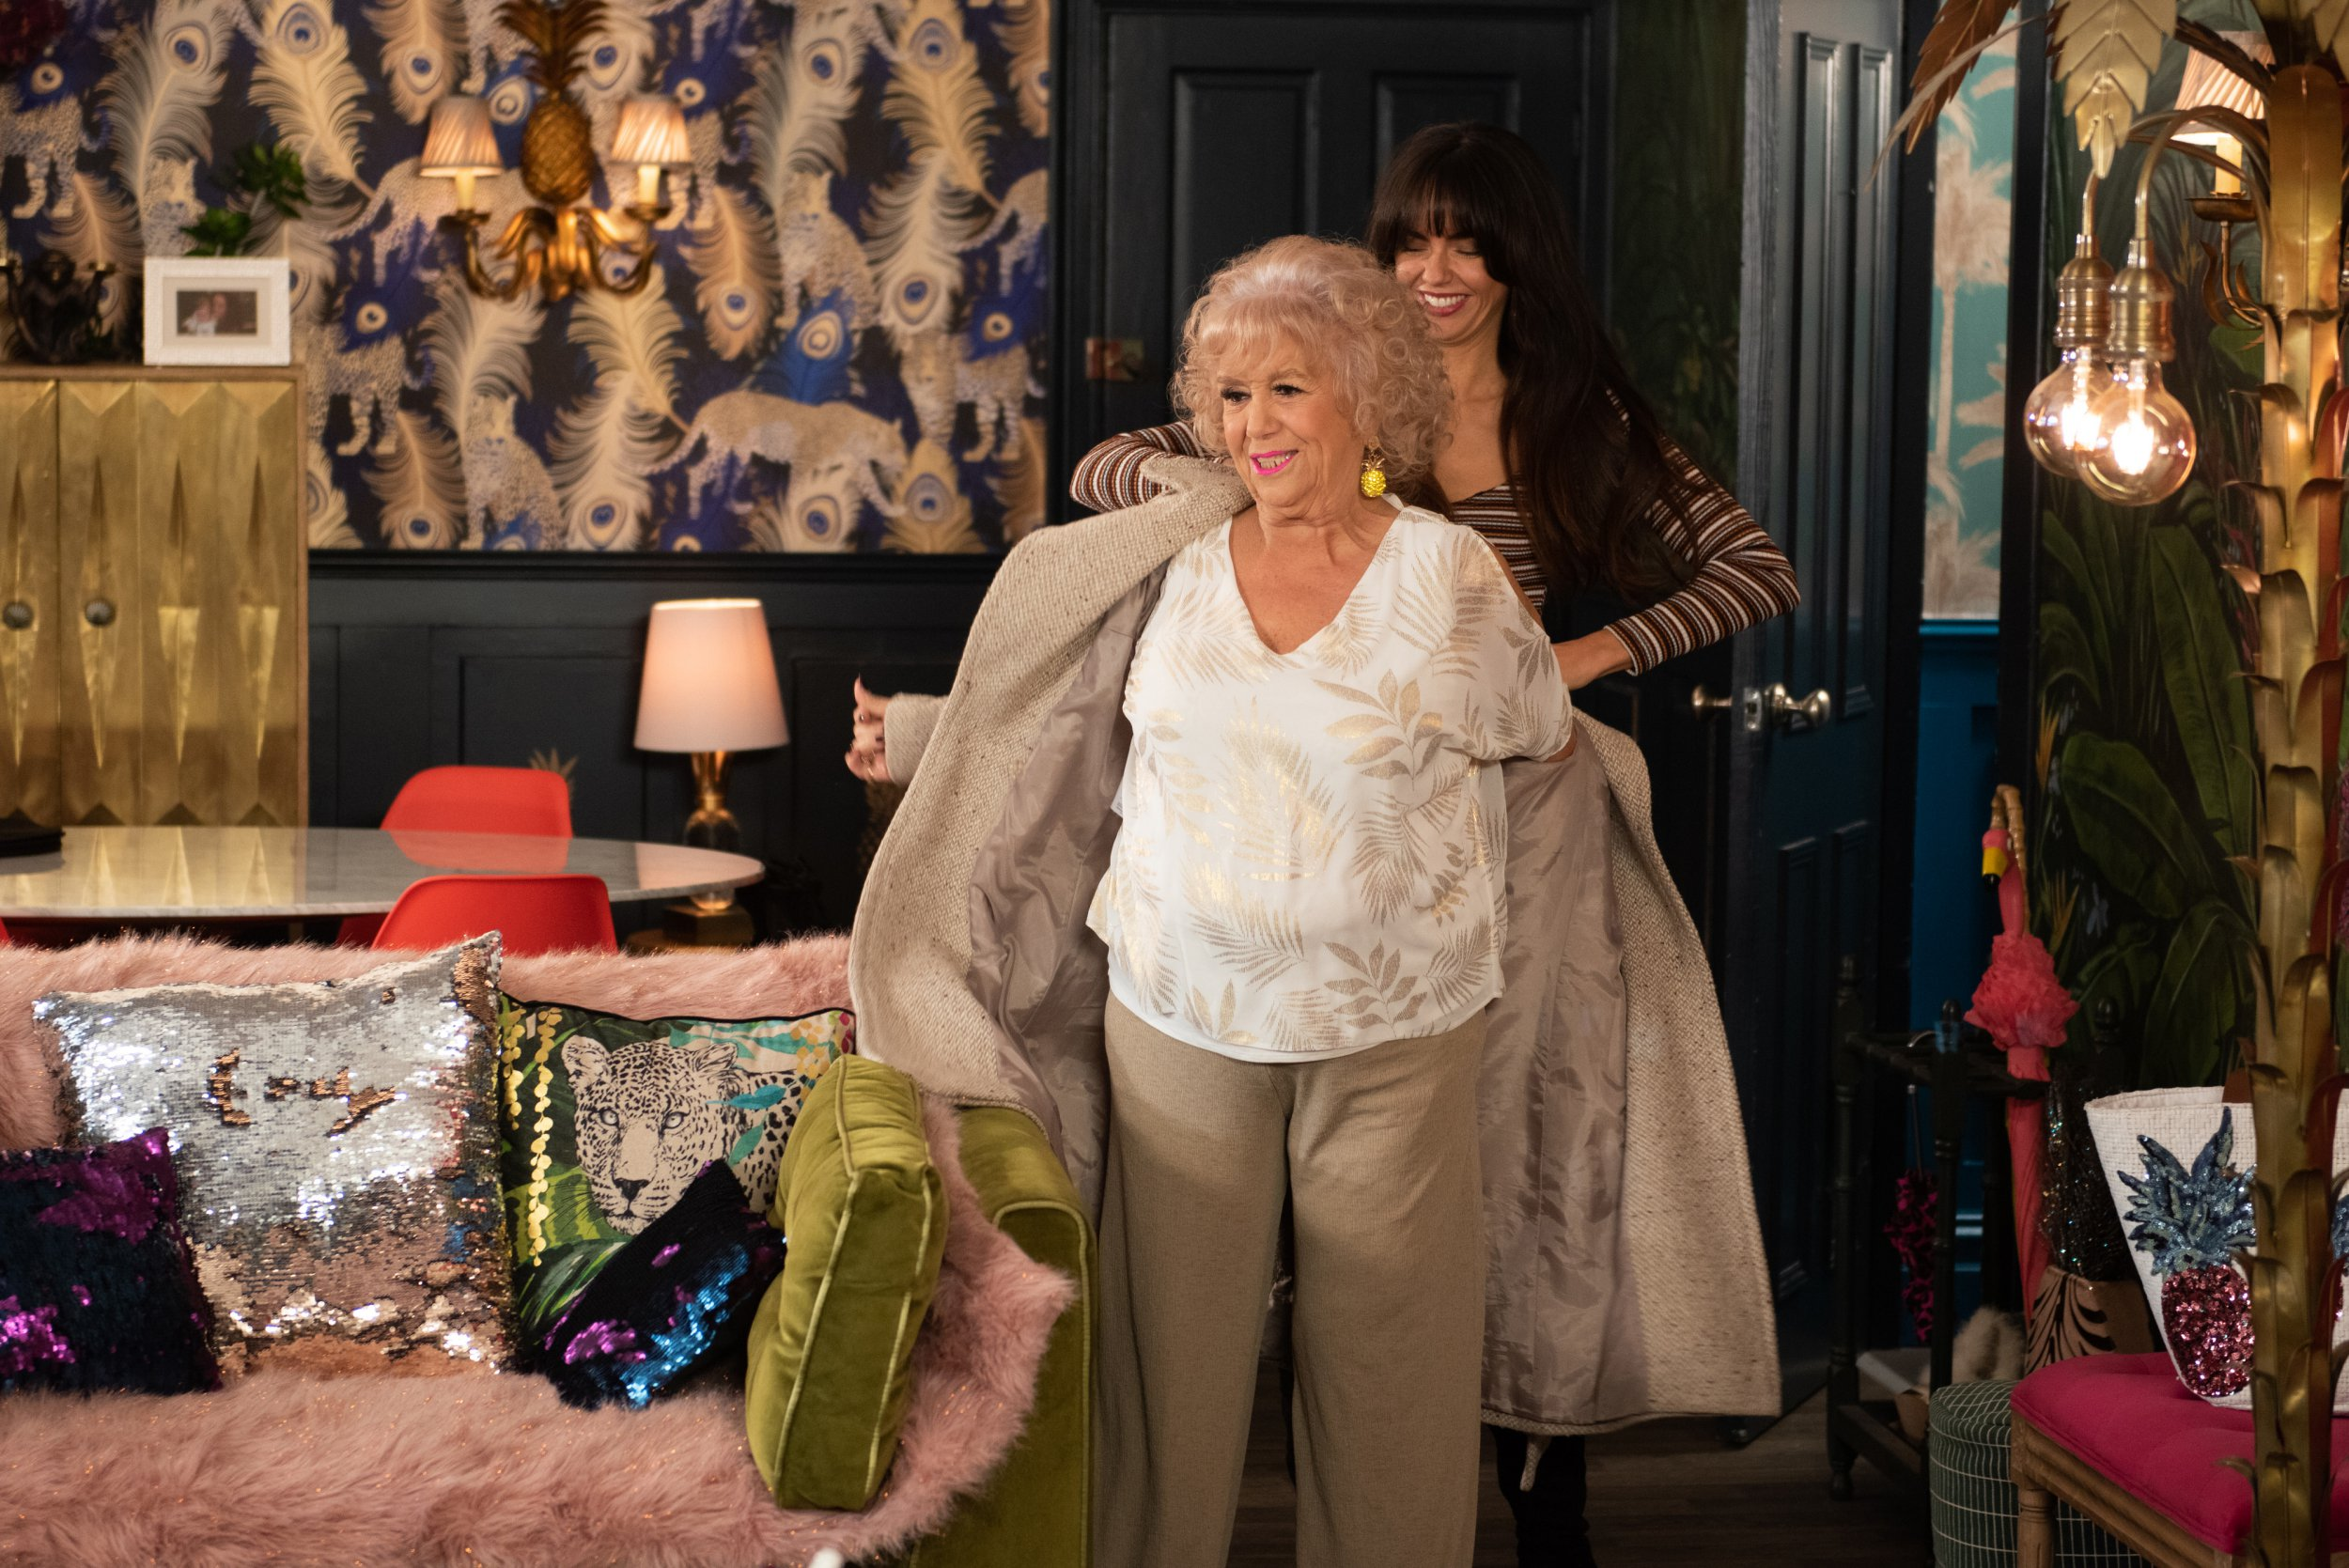 Hollyoaks spoilers: Nana McQueen to die after shock collapse?